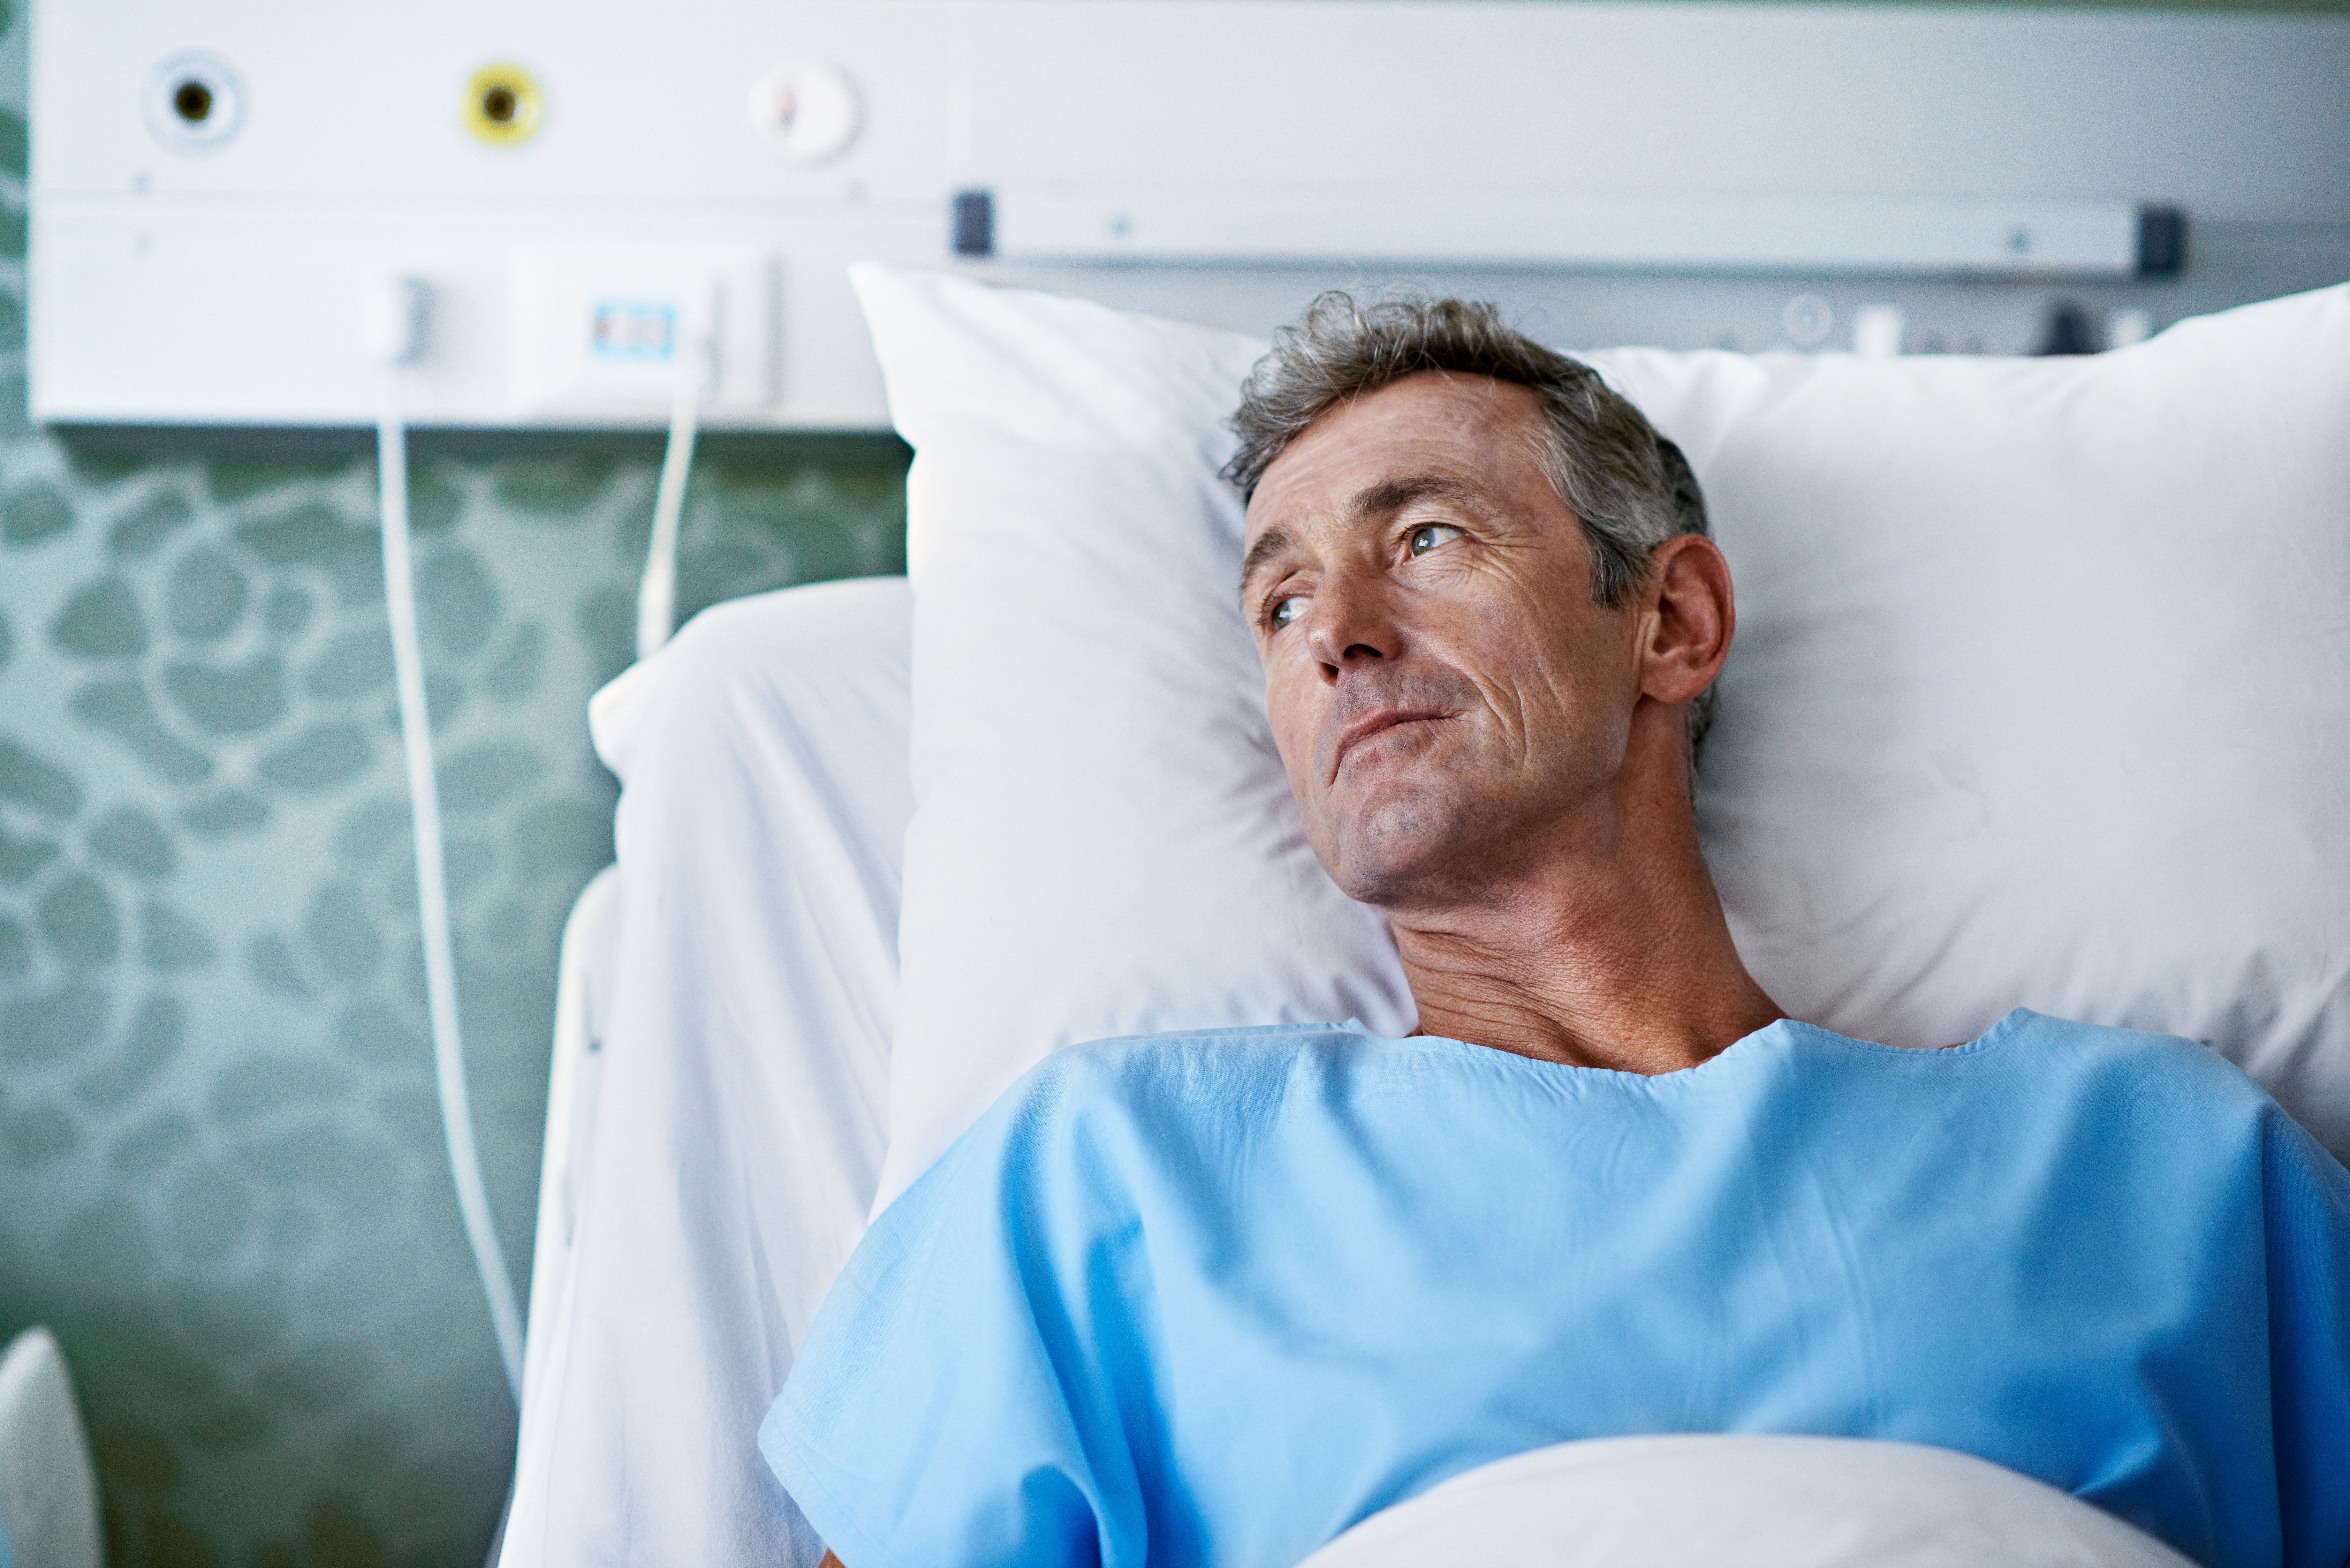 Incidents Of Stroke Predicted To Rise By 59% In Next 20